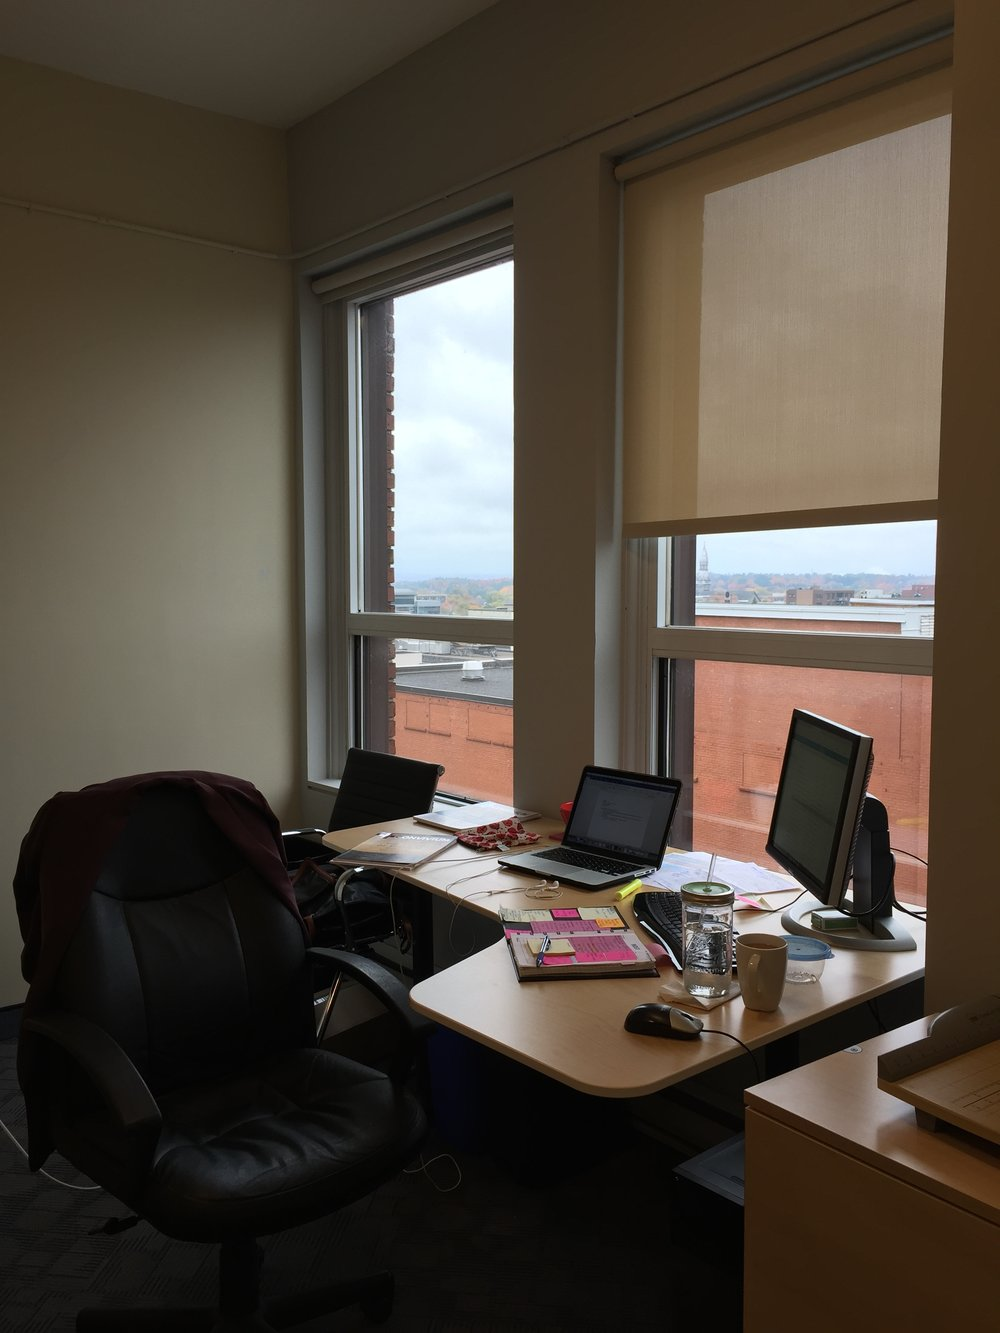 My desk...note the Gatineau parkway colours in the back window and my vast array of sticky notes. Do not note the seemingly cluttered desk.